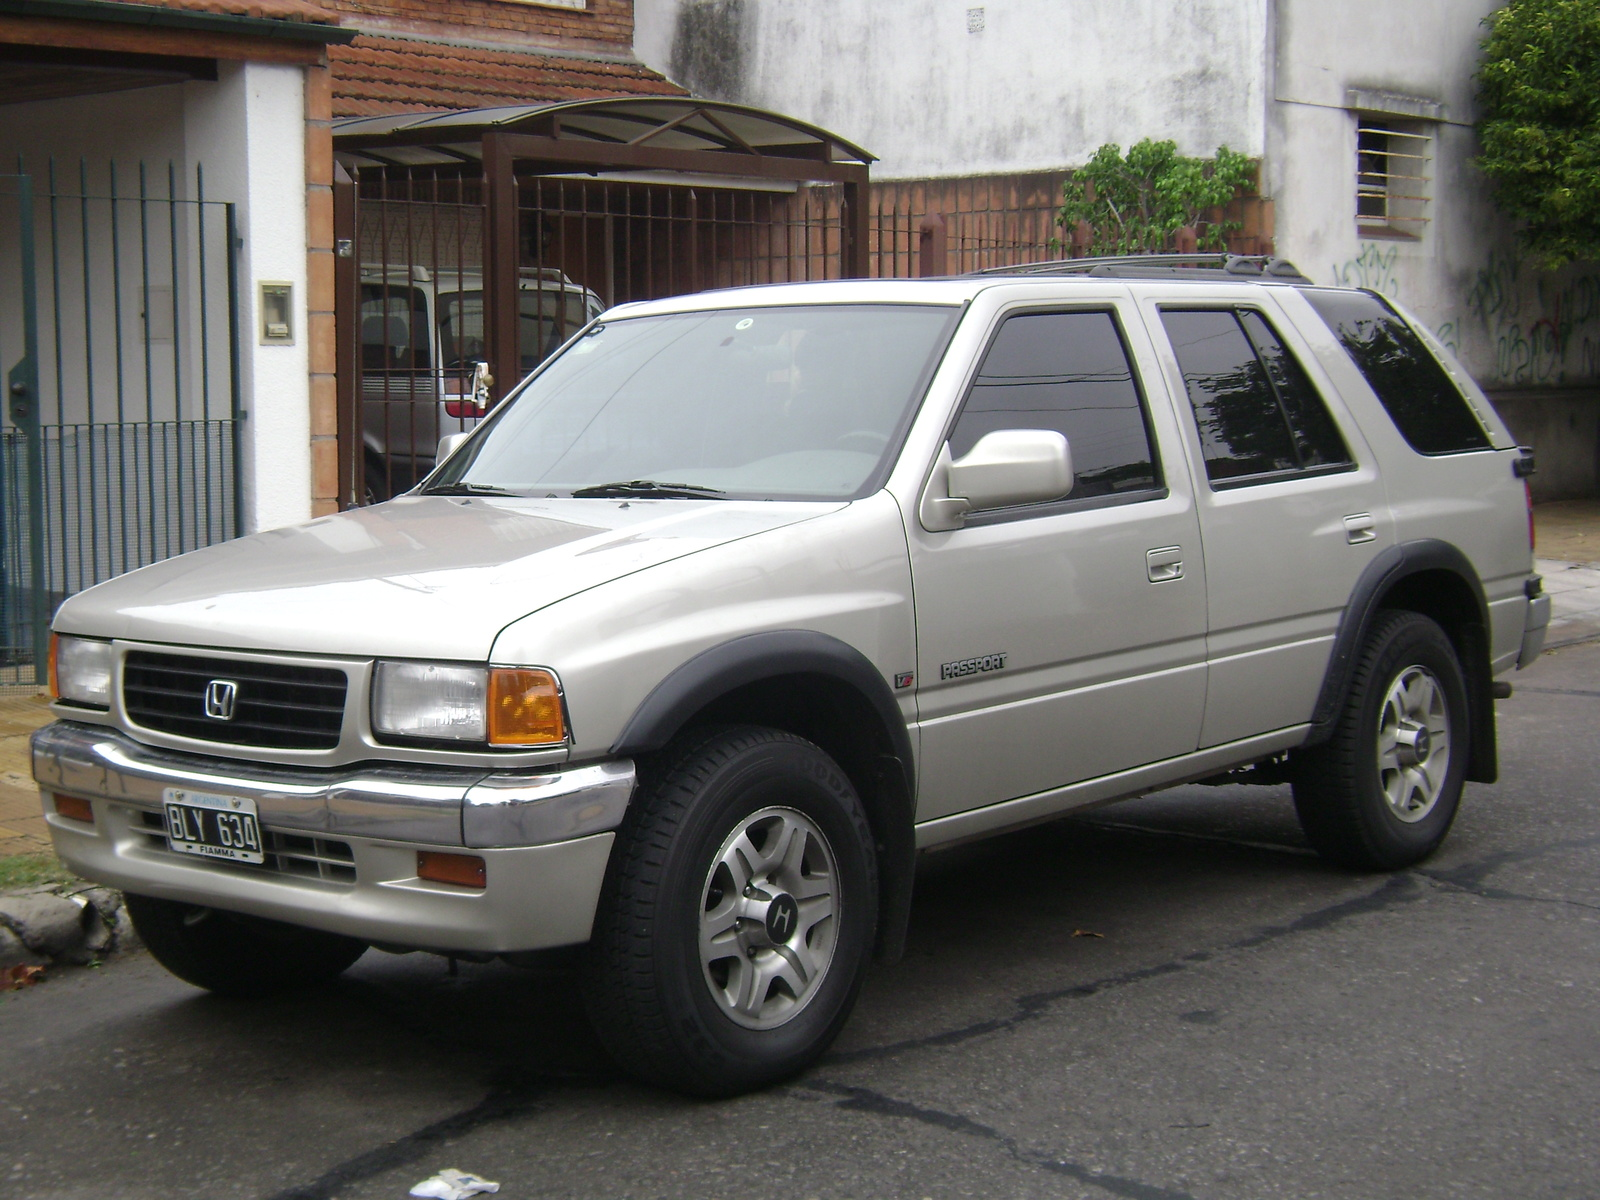 Honda Passport #14